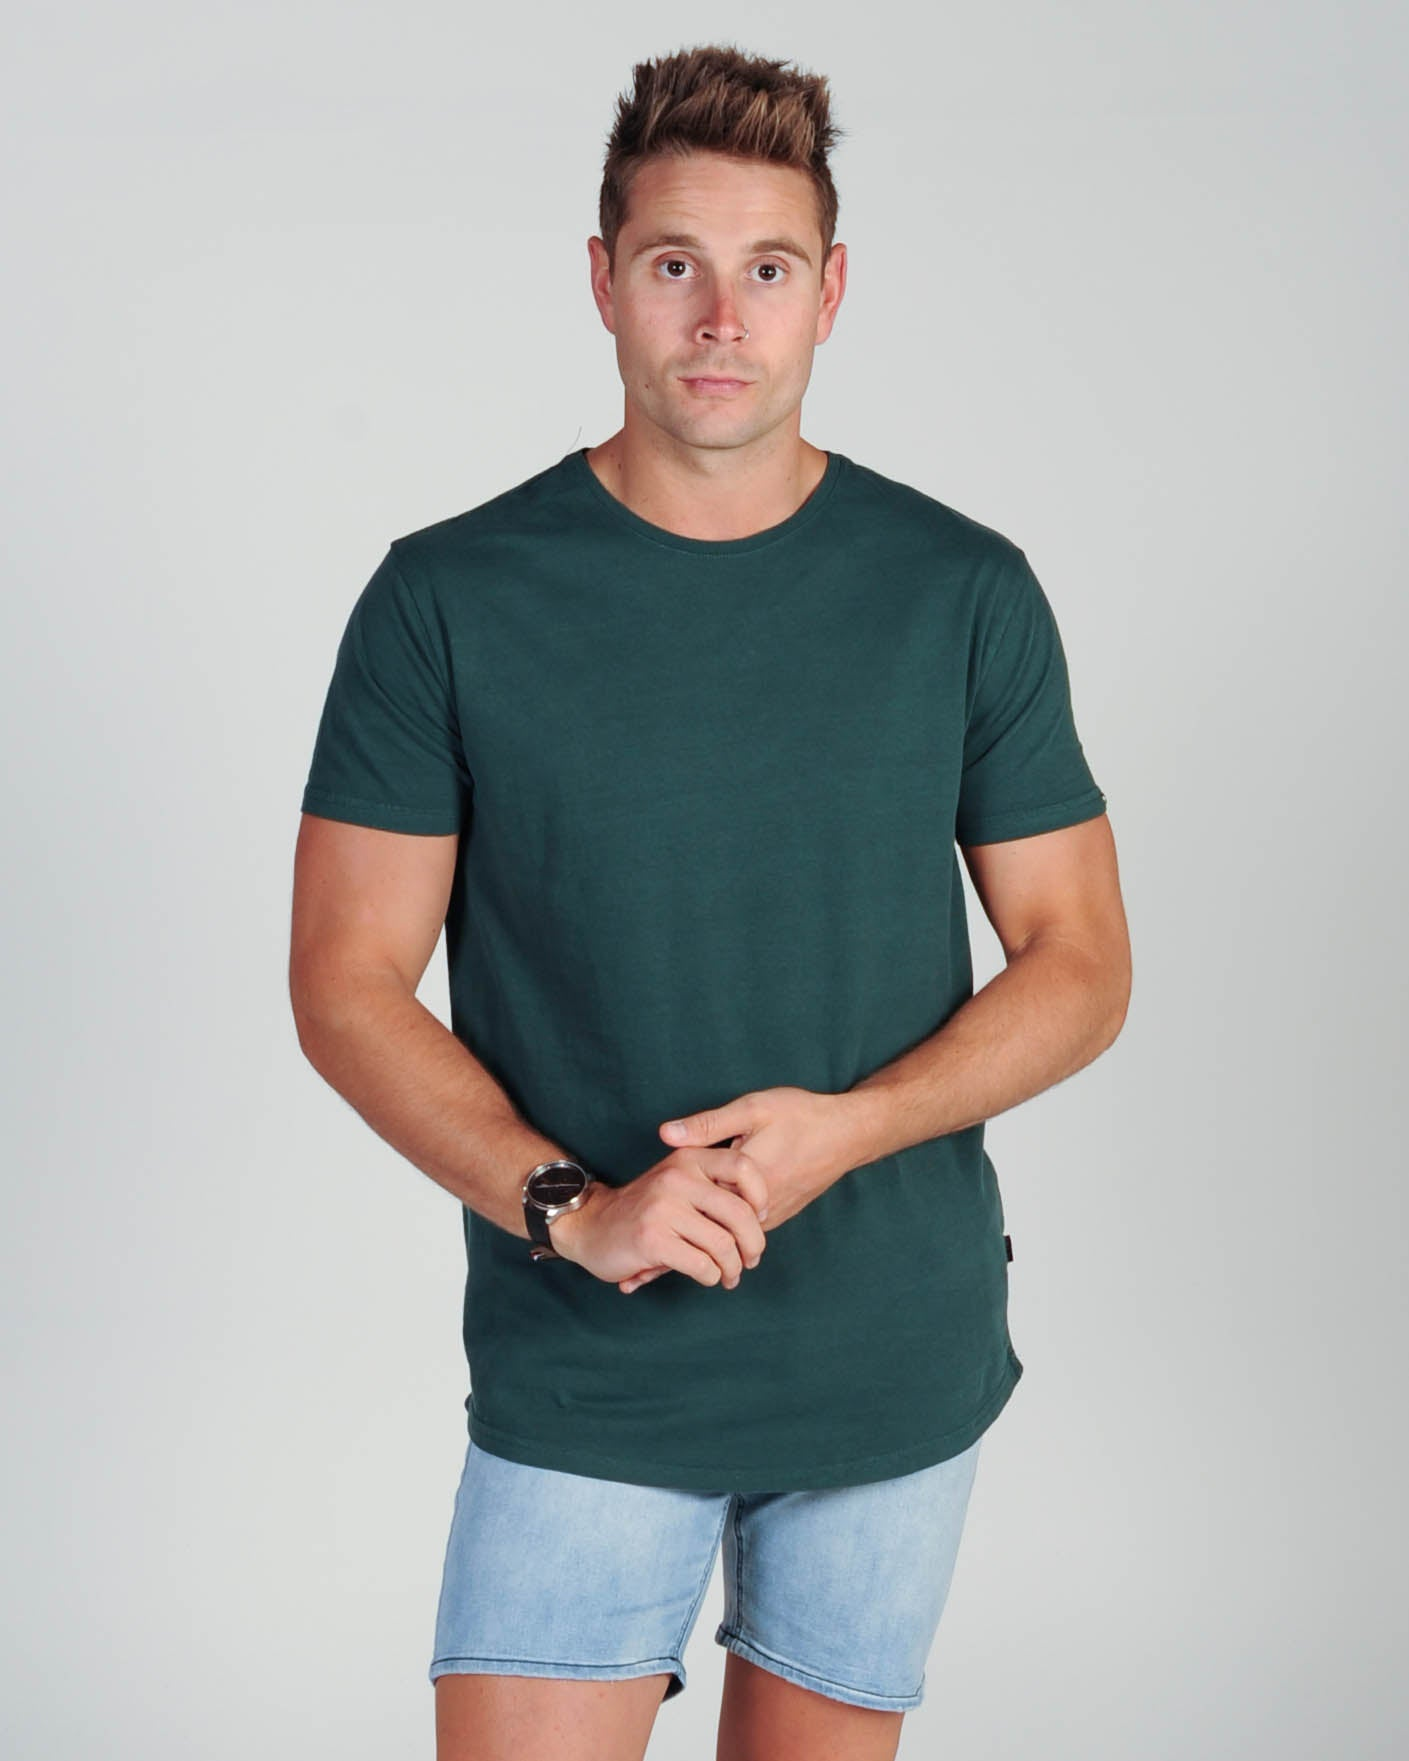 9213b80d1d Silent Theory Tail Tee - Emerald – New Generation Clothing